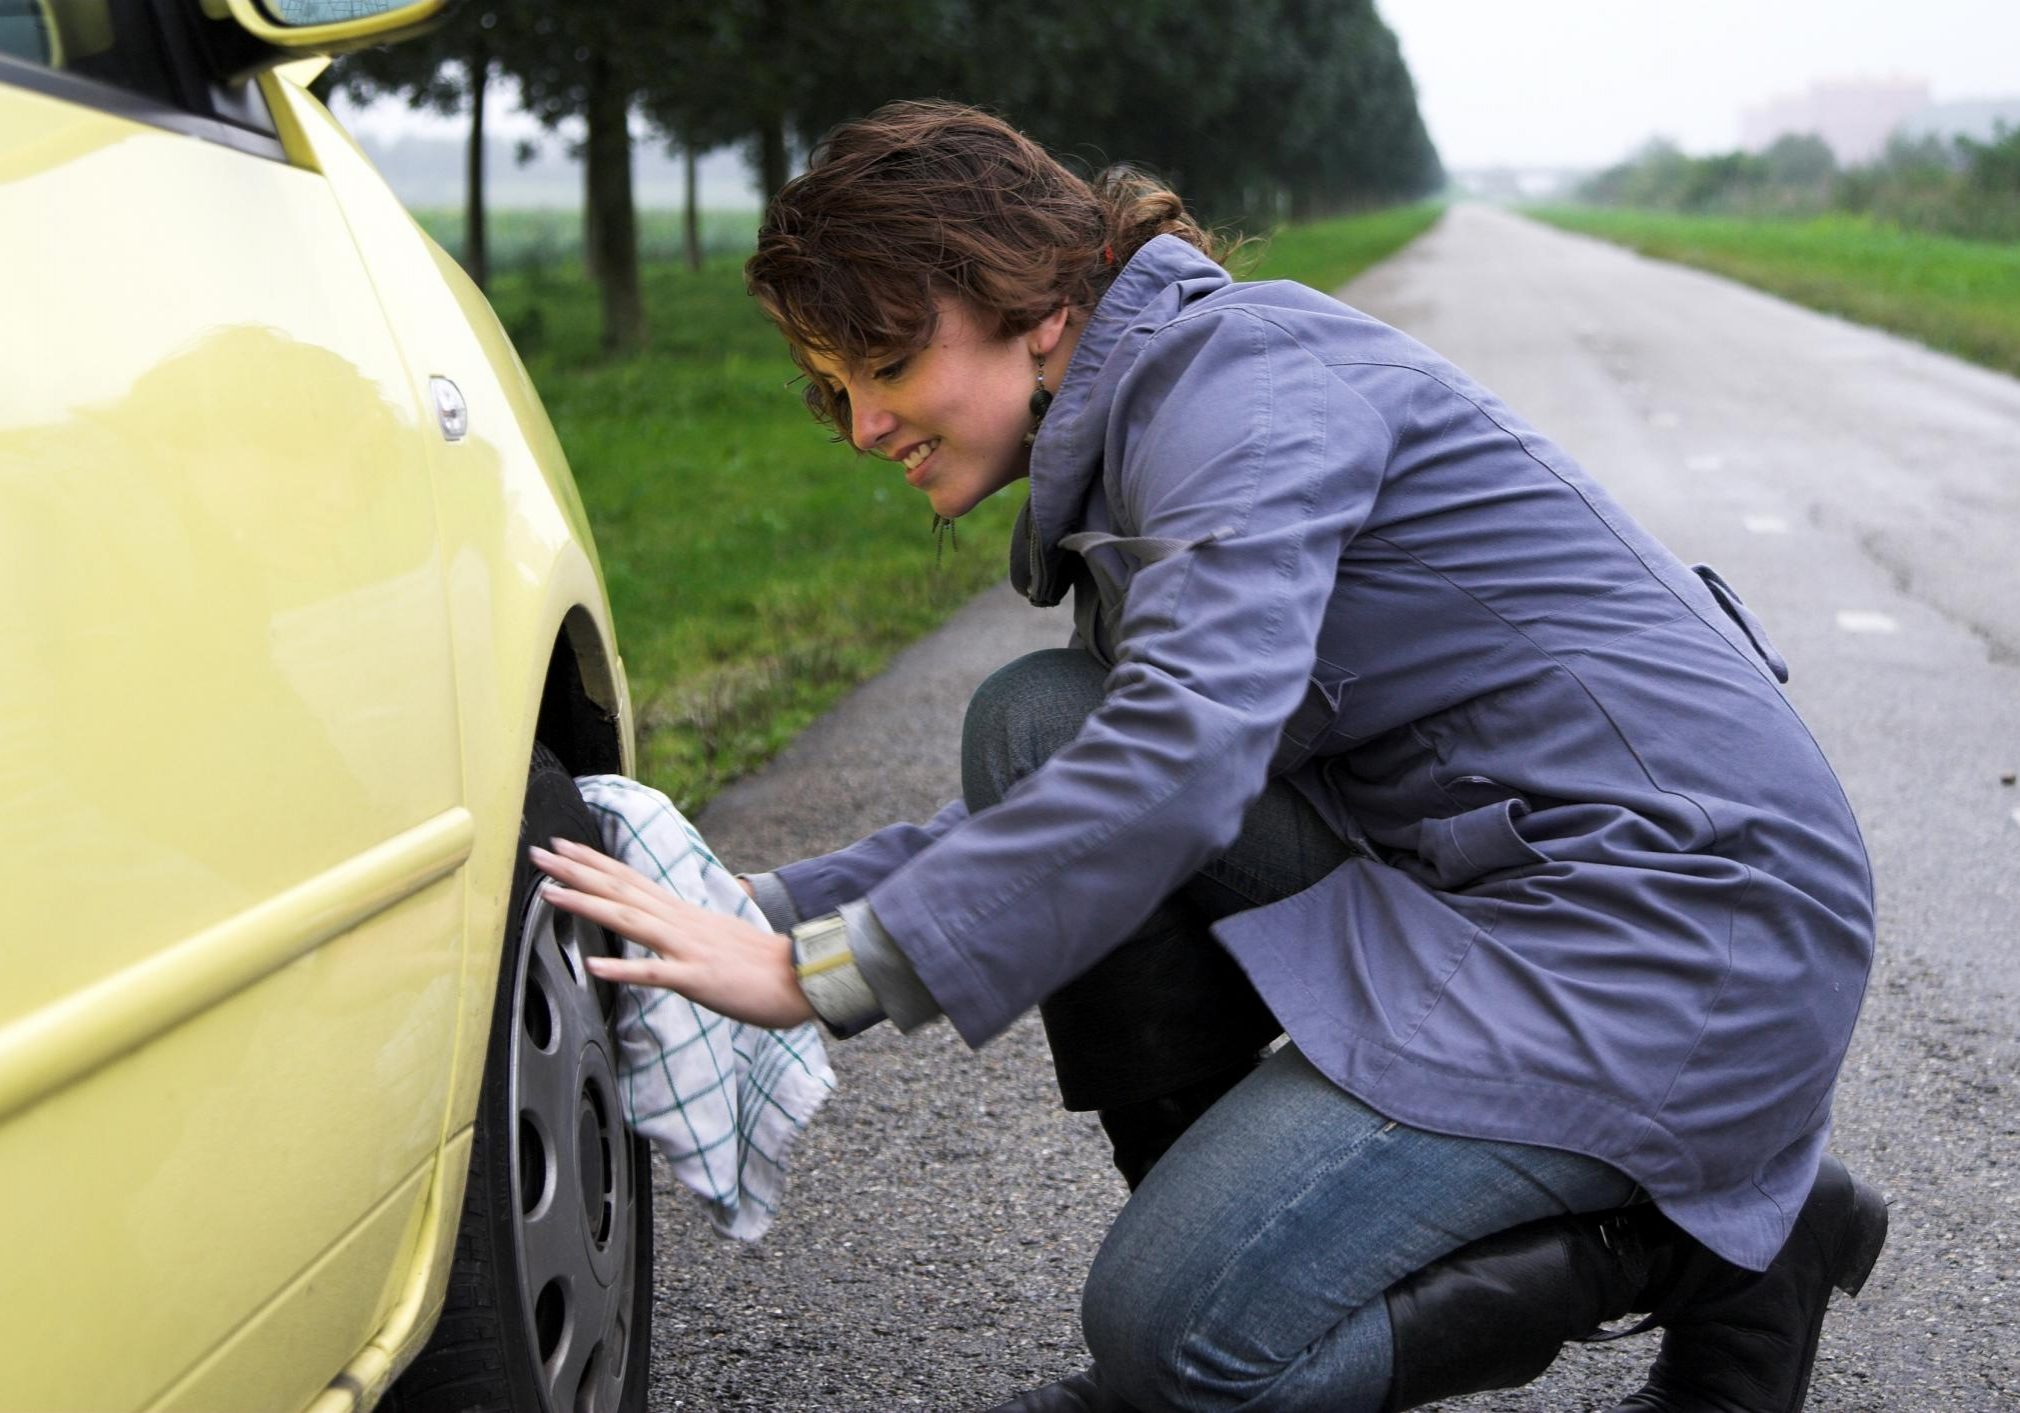 This is a picture of an emergency roadside assistance.